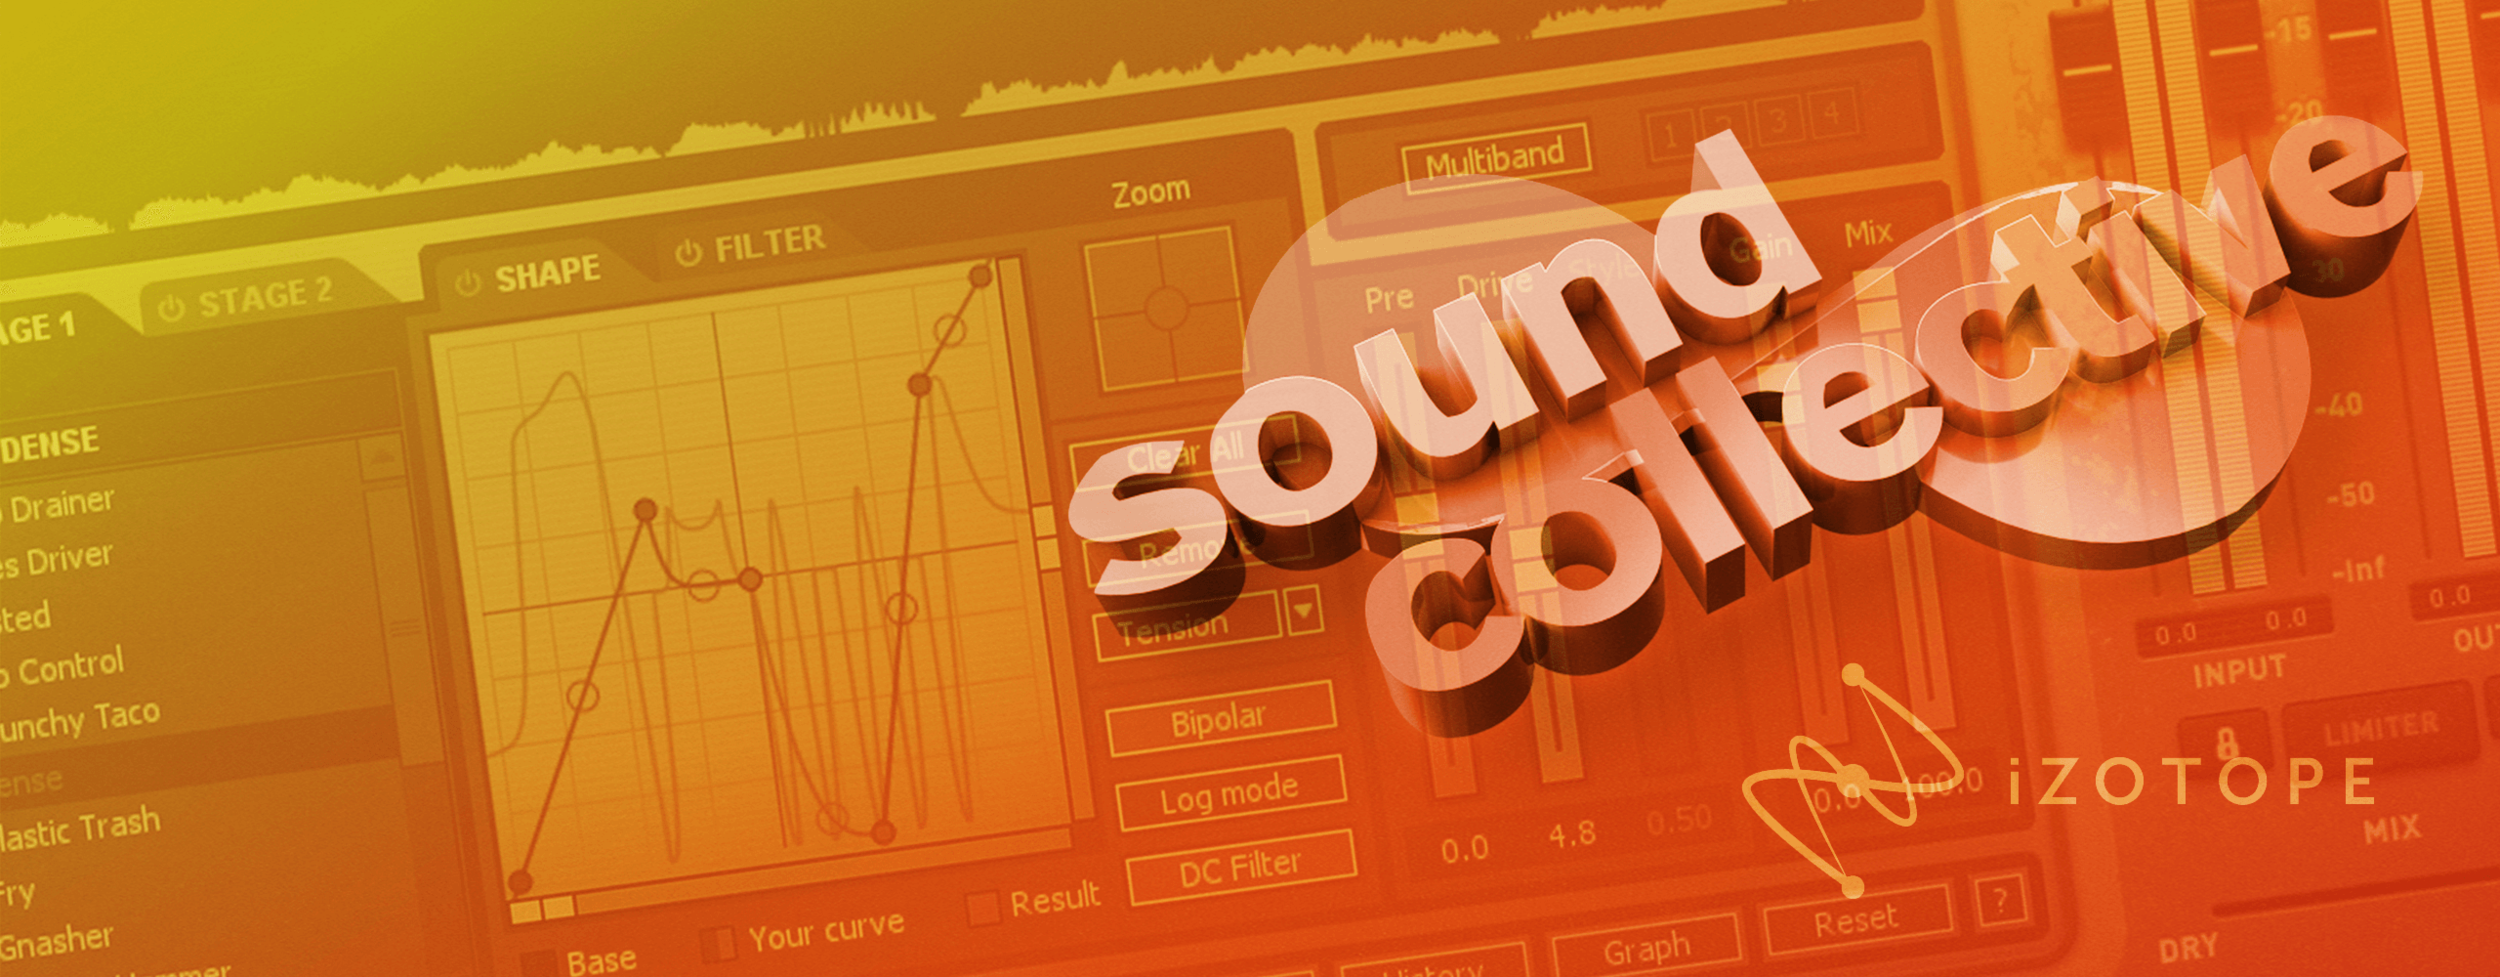 SC-Izotope-HP-Banner-2560-1000.png